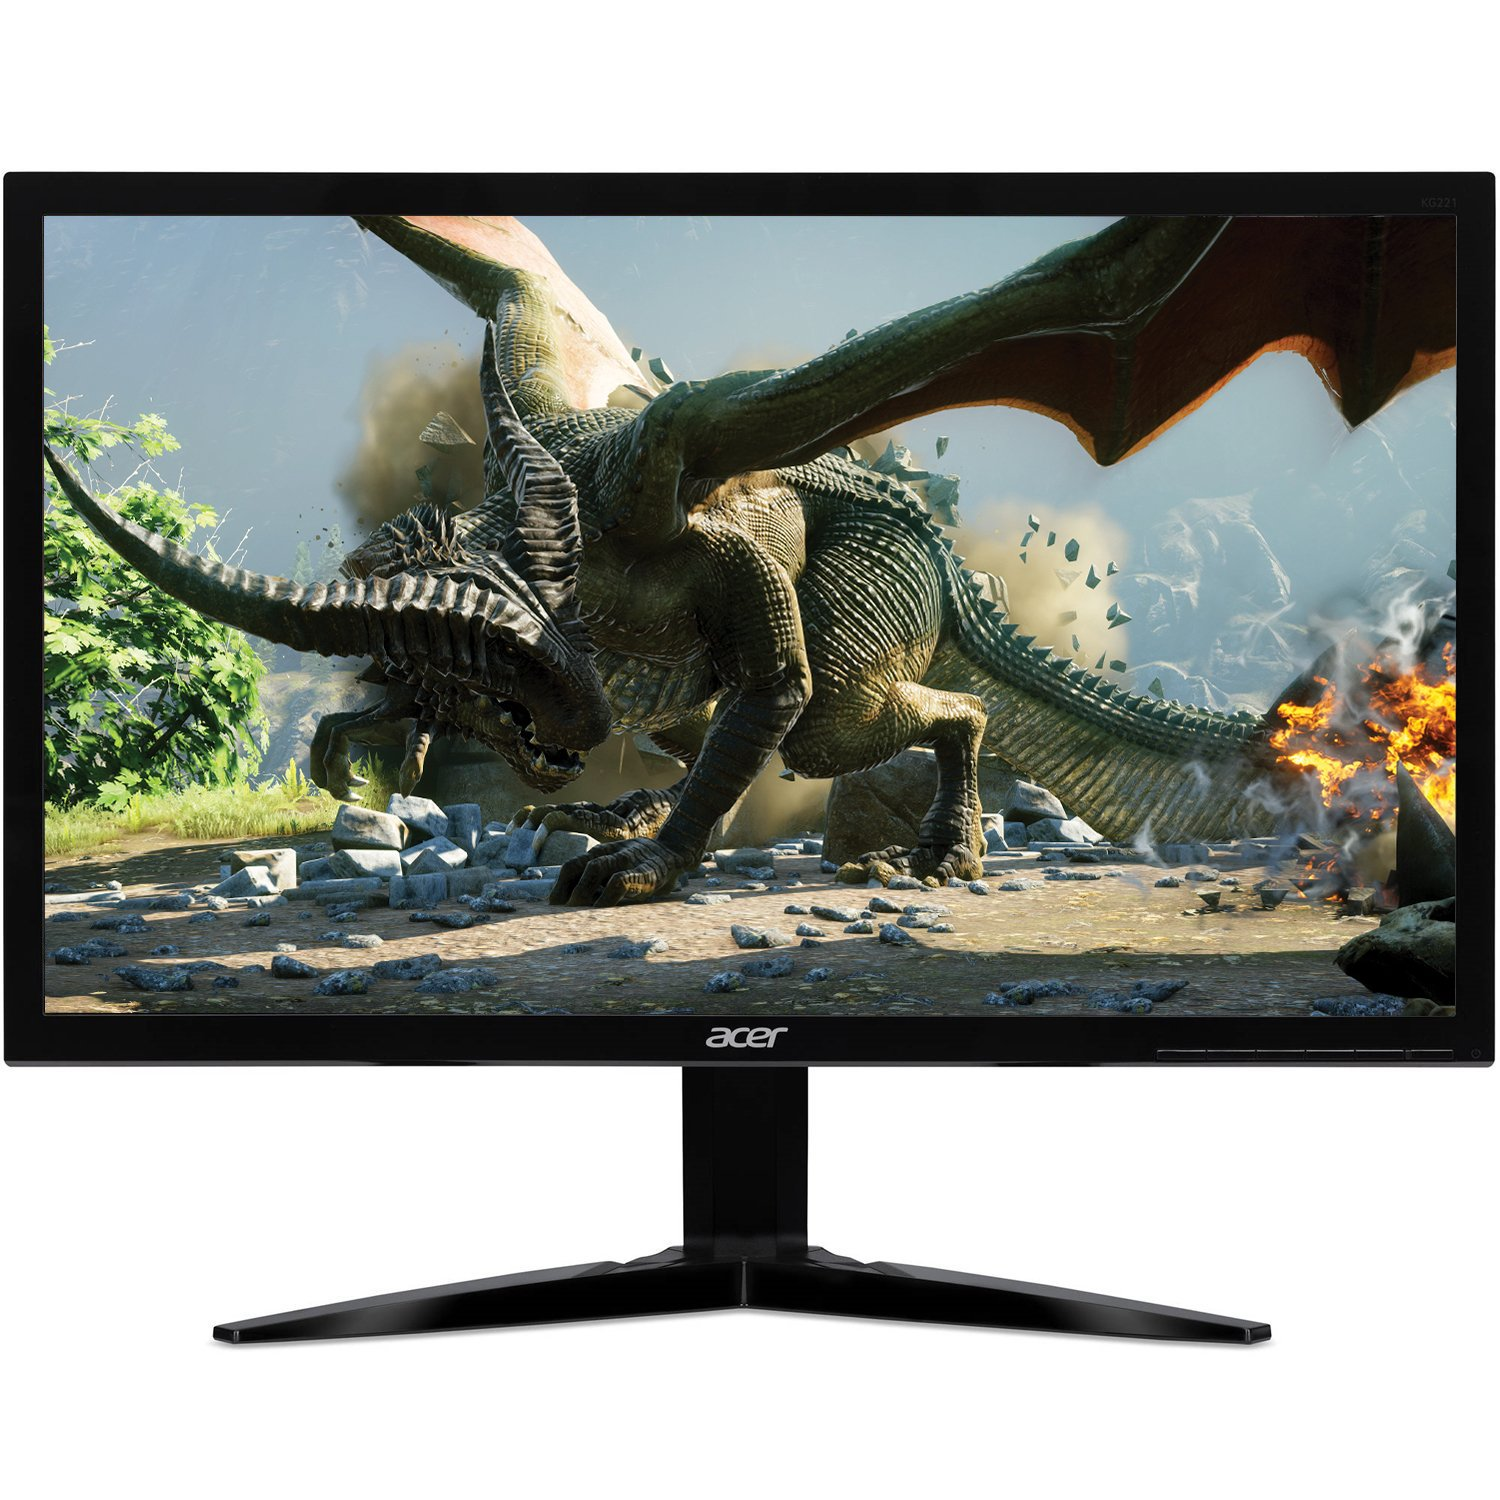 "Acer Gaming Monitor 21.5"" KG221Q bmix 1920 x 1080 1ms Response Time AMD FREESYNC Technology (HDMI & VGA Ports)"